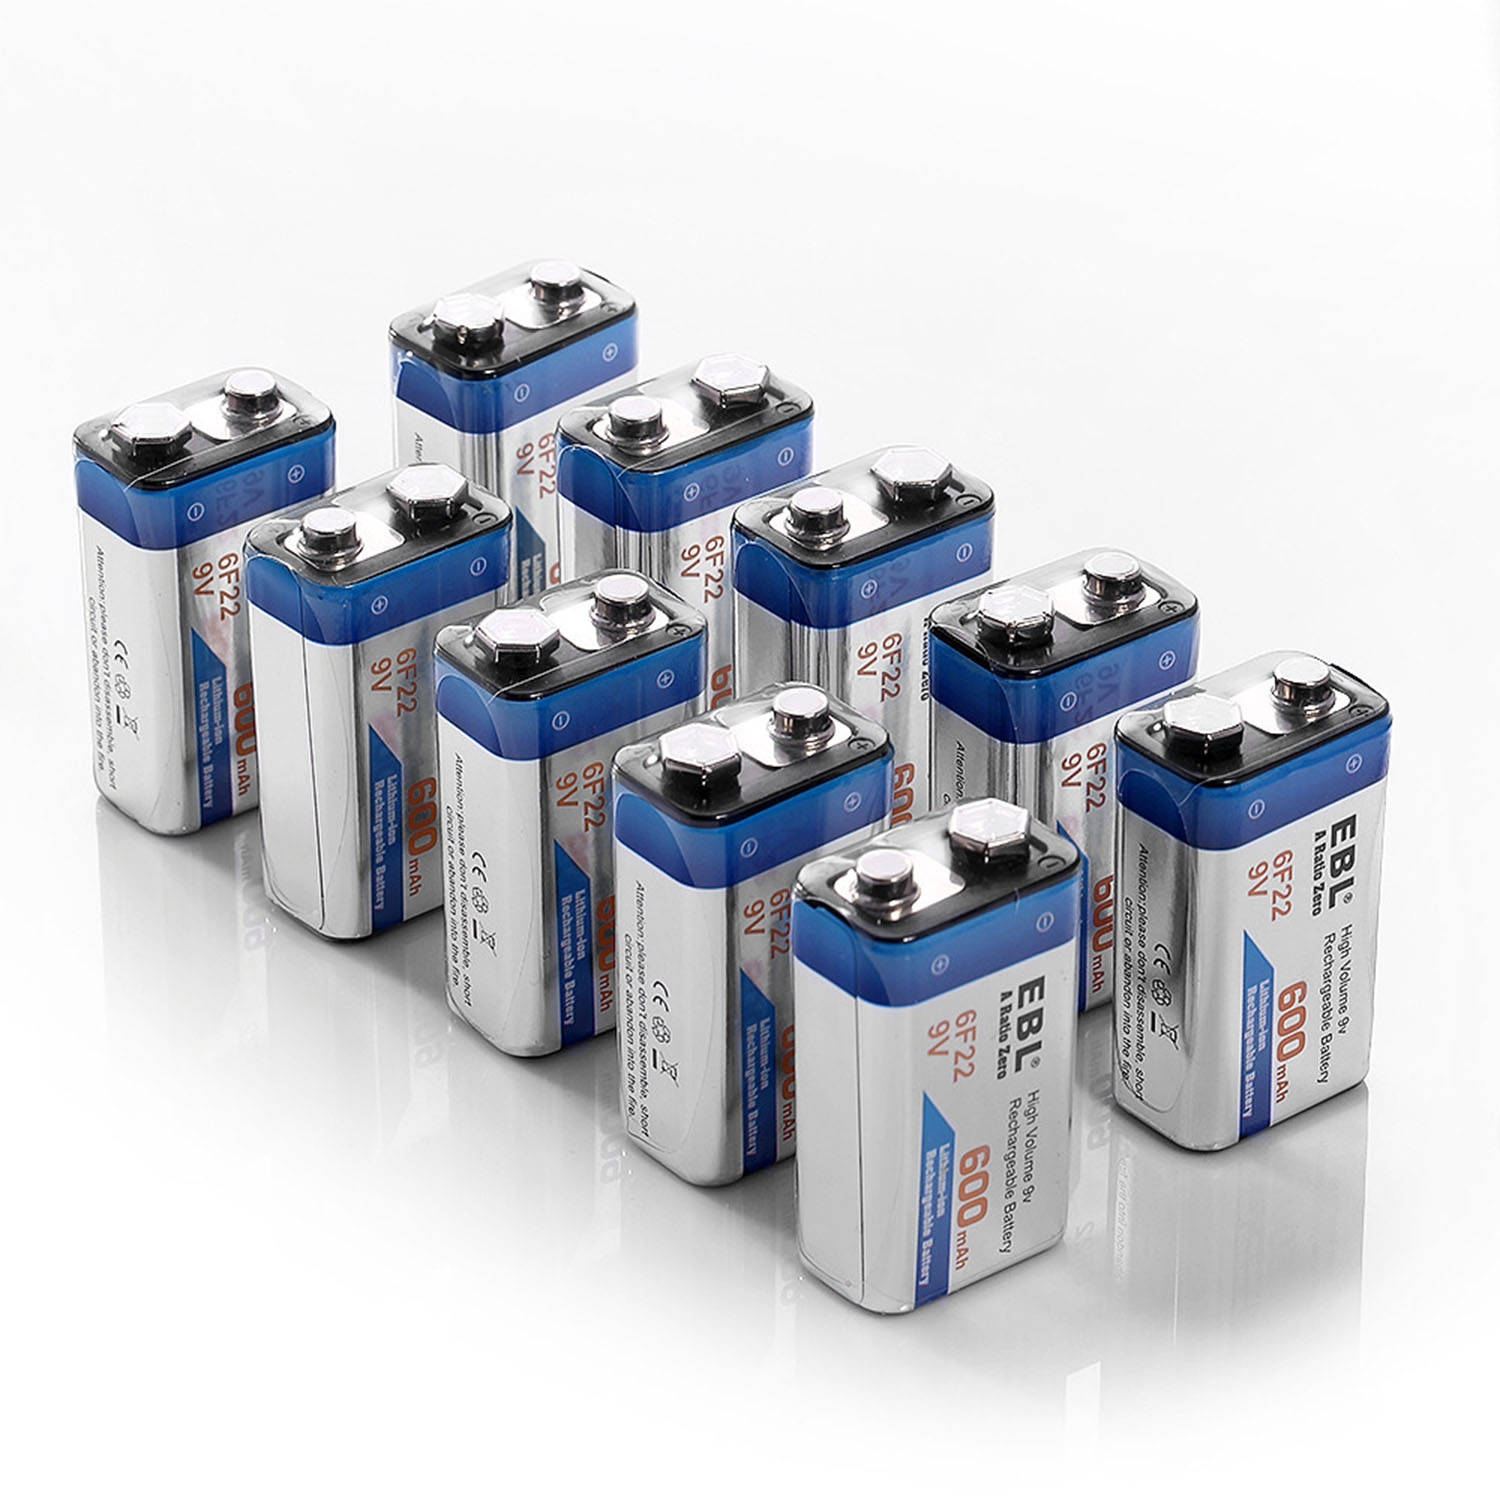 Rechargeable 9v Batteries